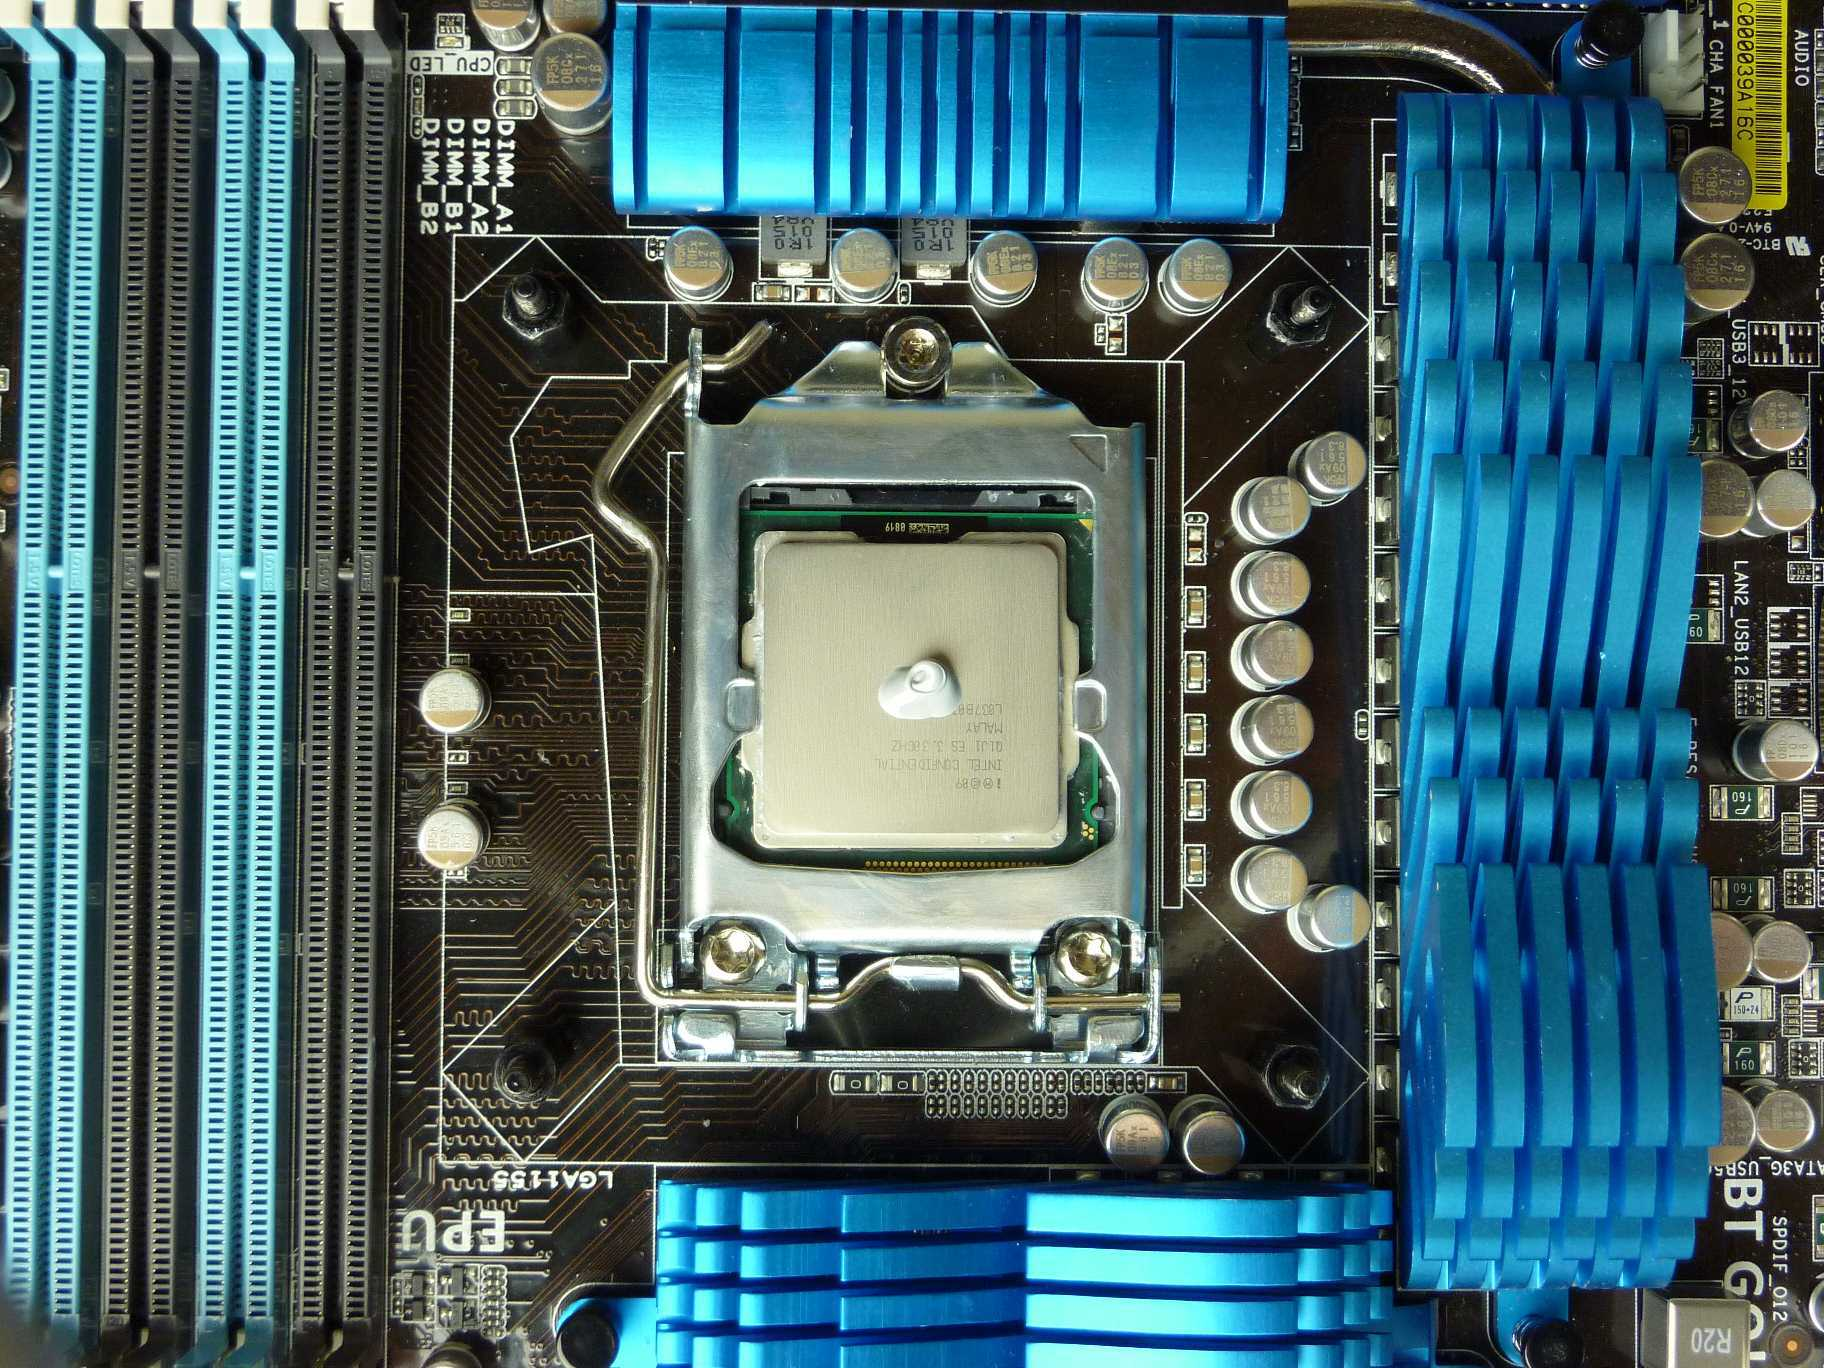 Thermal Paste 2x rice sized dot